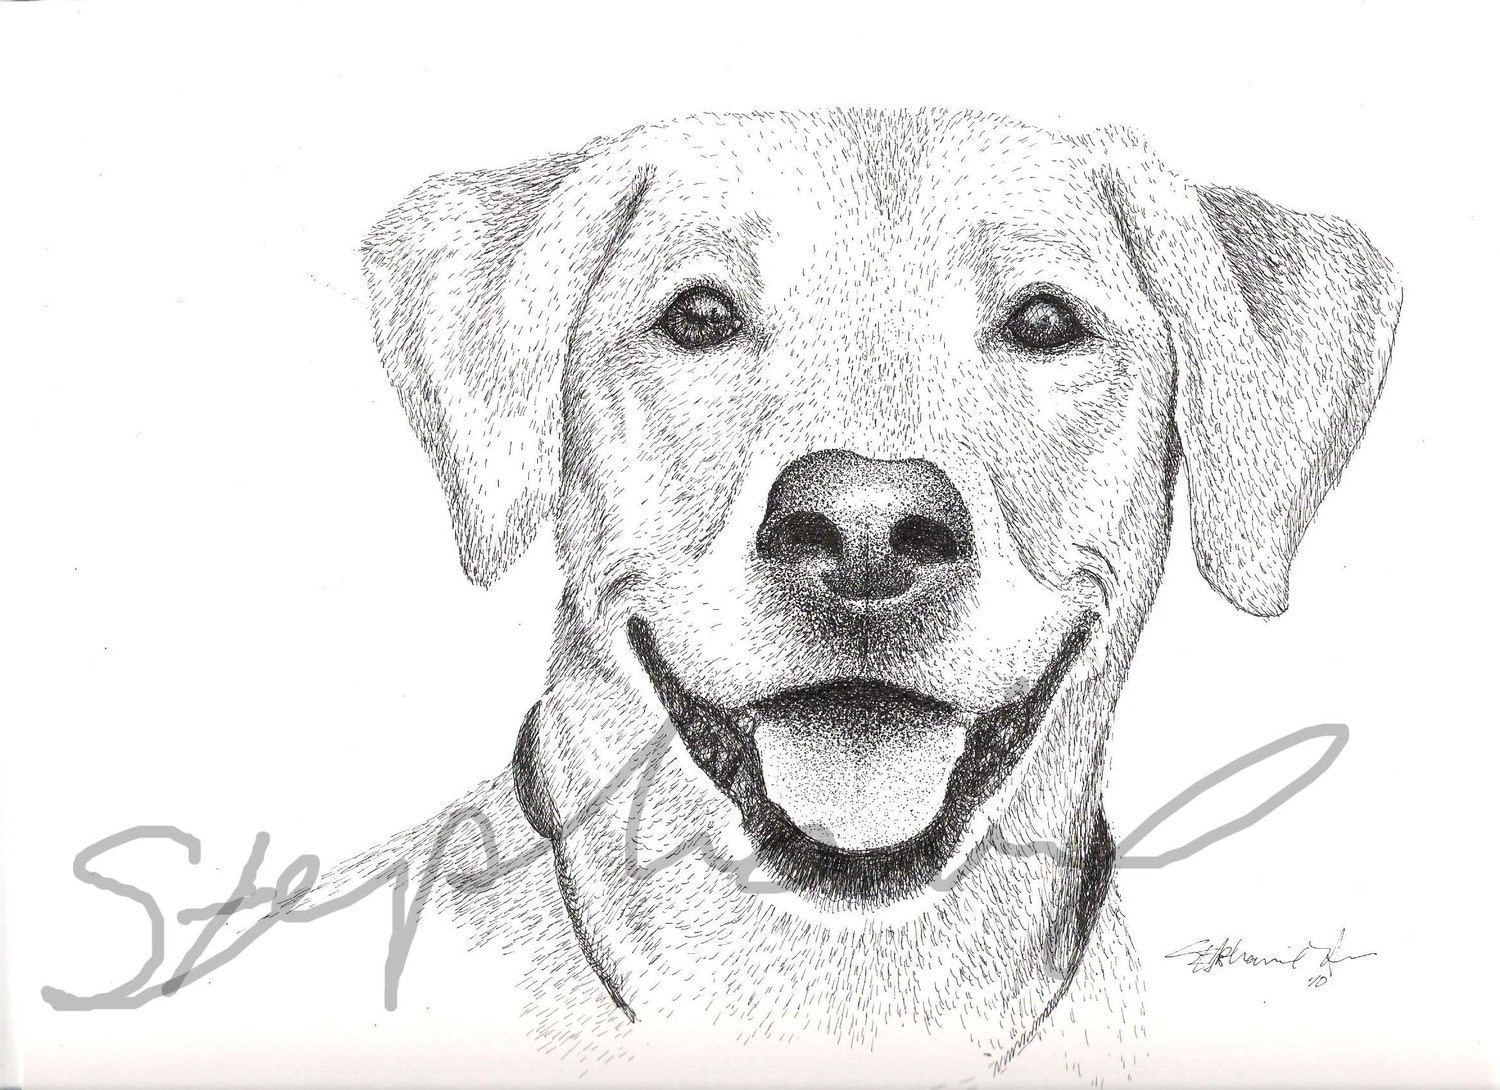 Custom dog drawing original 11x14 by huberart on etsy for Cane da colorare e stampare